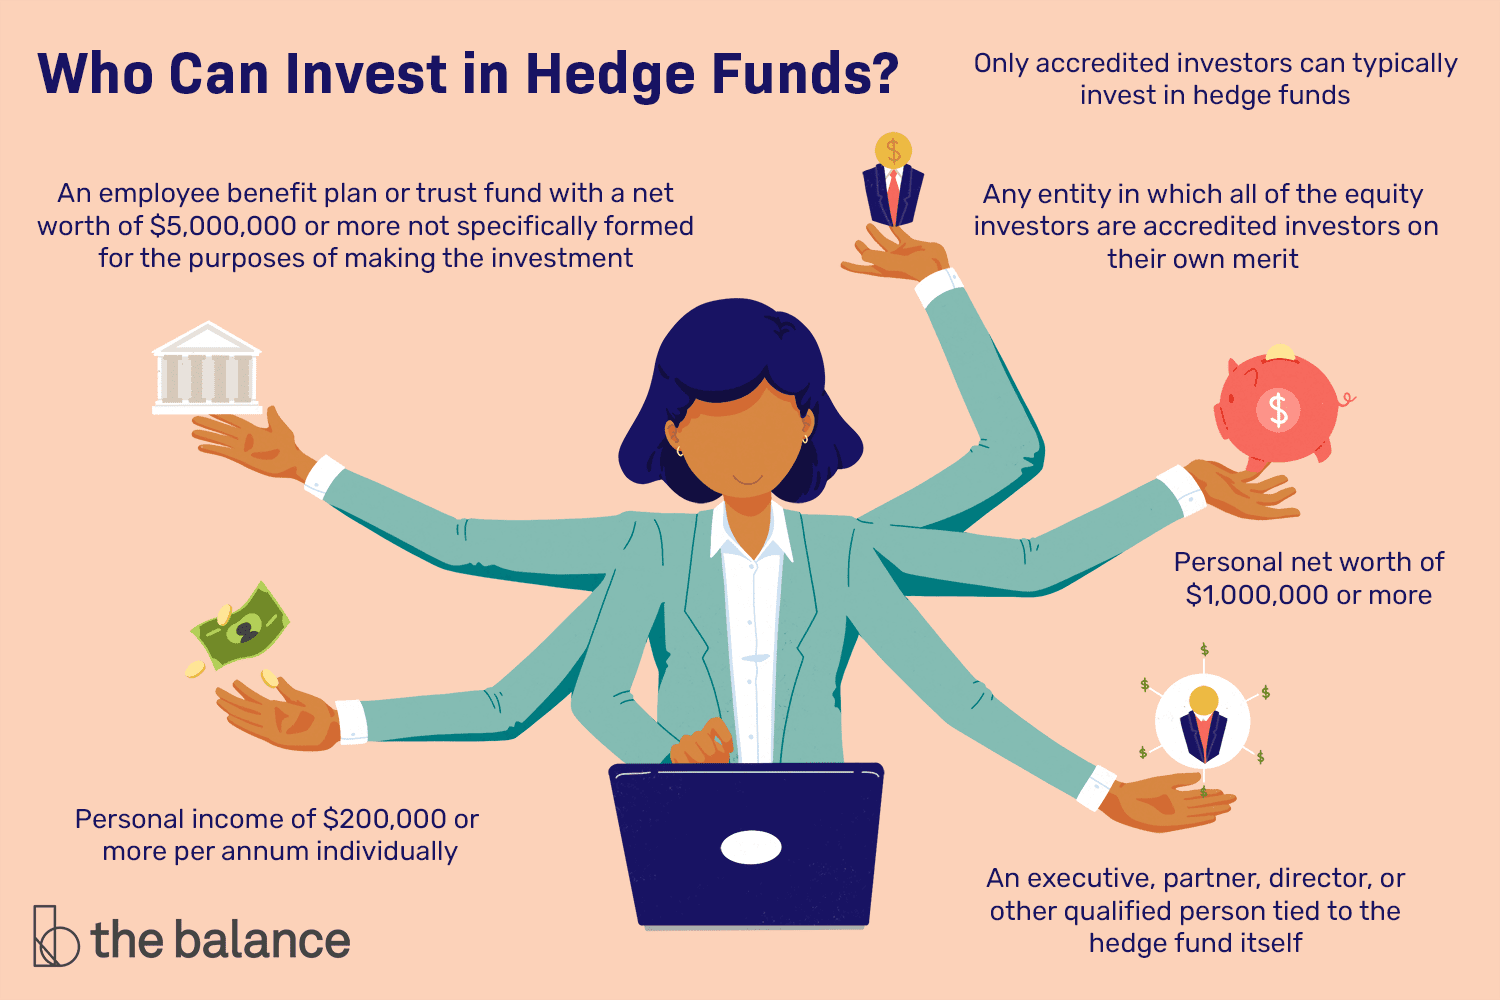 Who can invest in Hedge Funds?